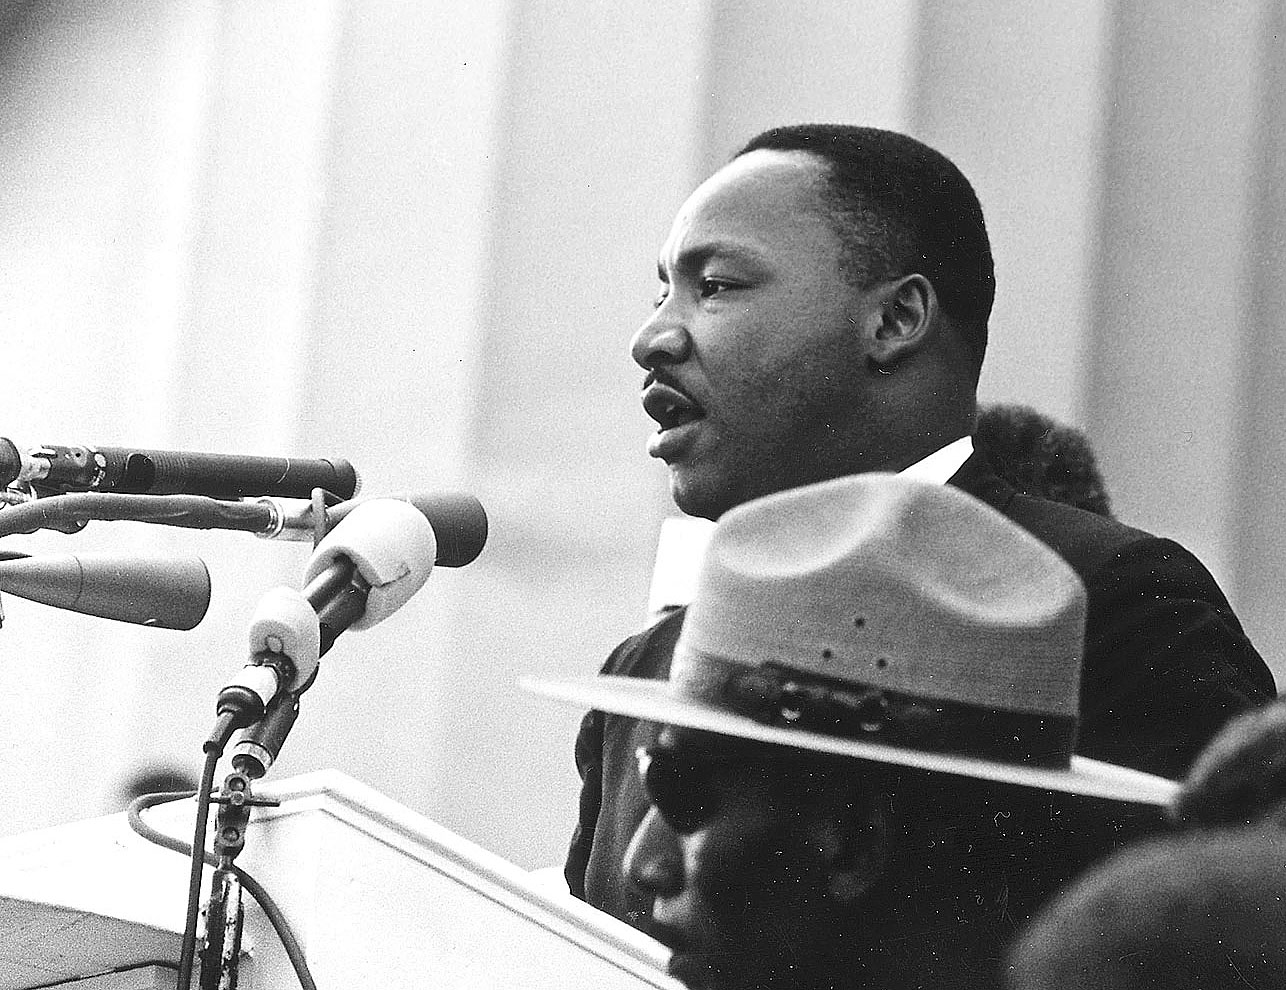 crop-mlk-washington-1963-27-0334a